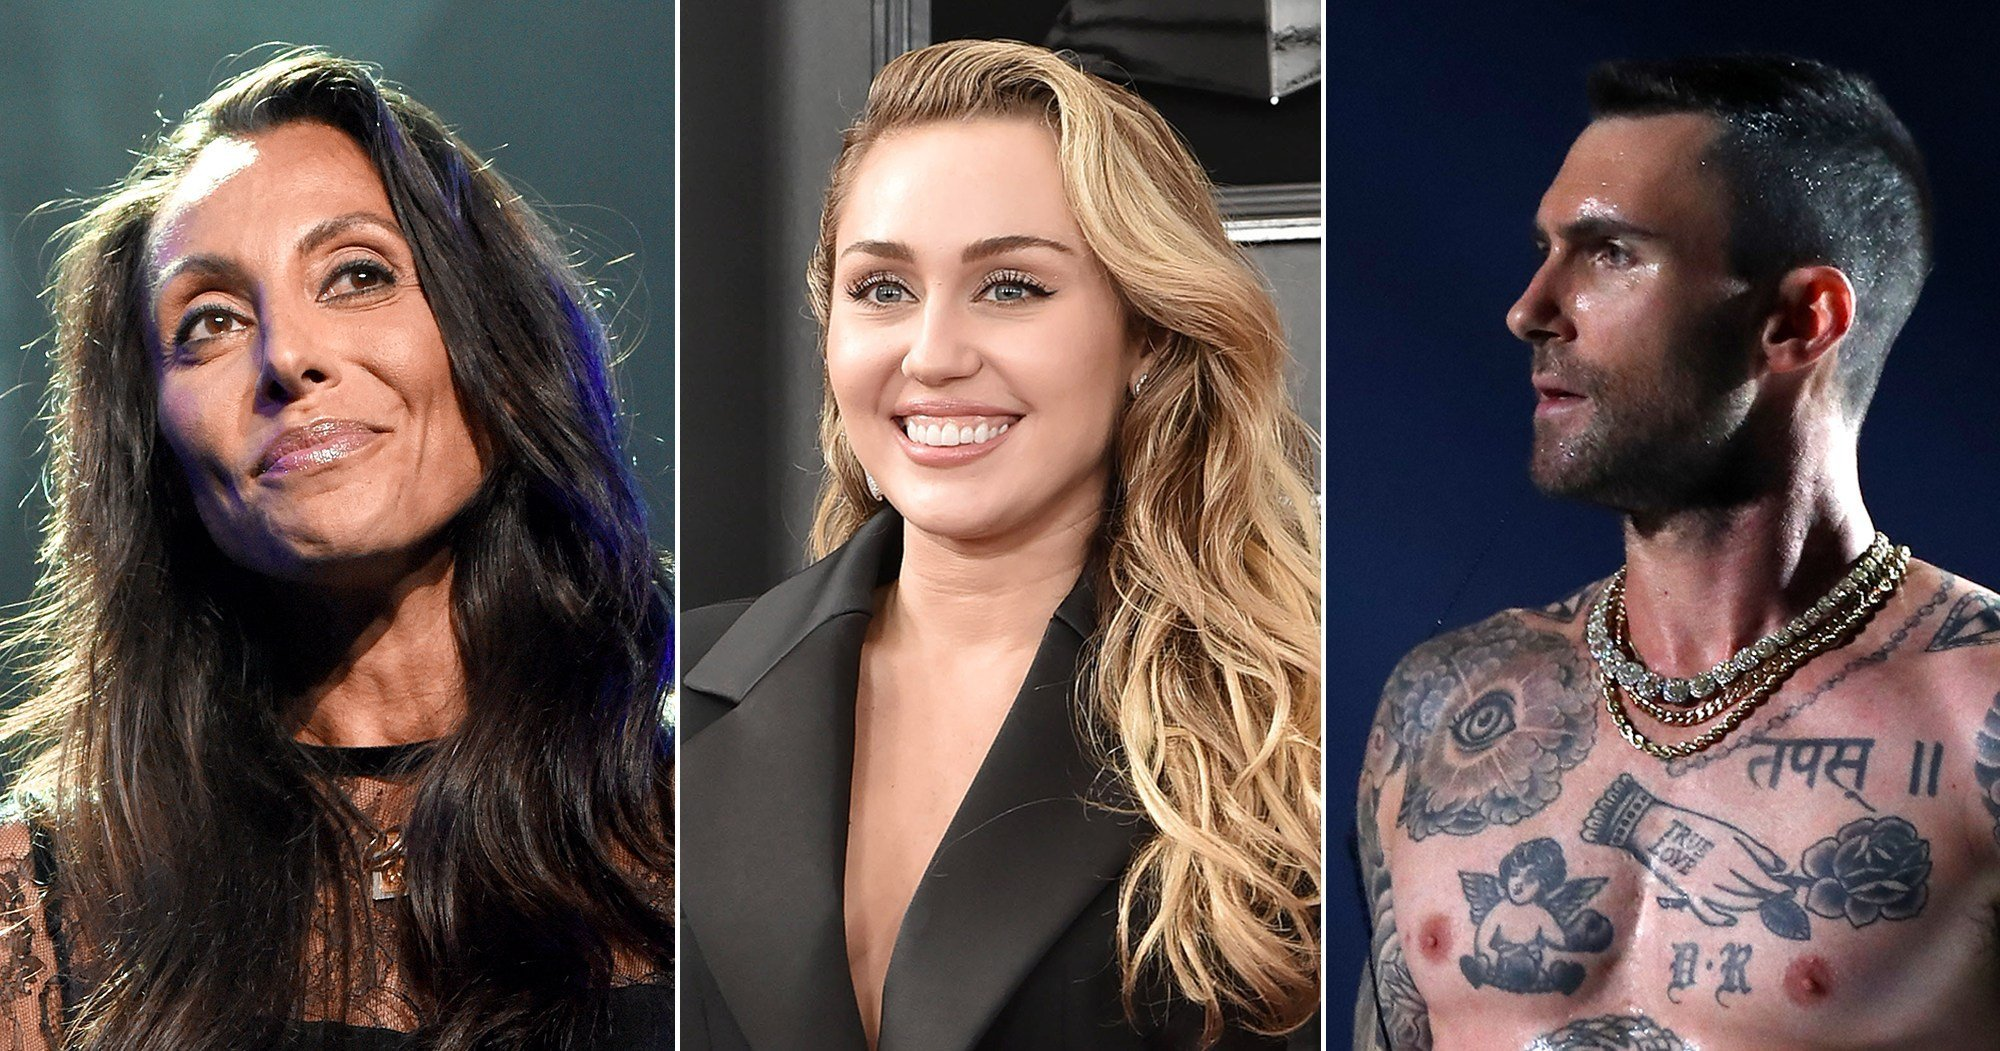 Chris Cornell's Widow Vicky: Miley Cyrus, More Wowed Me at Tribute Concert